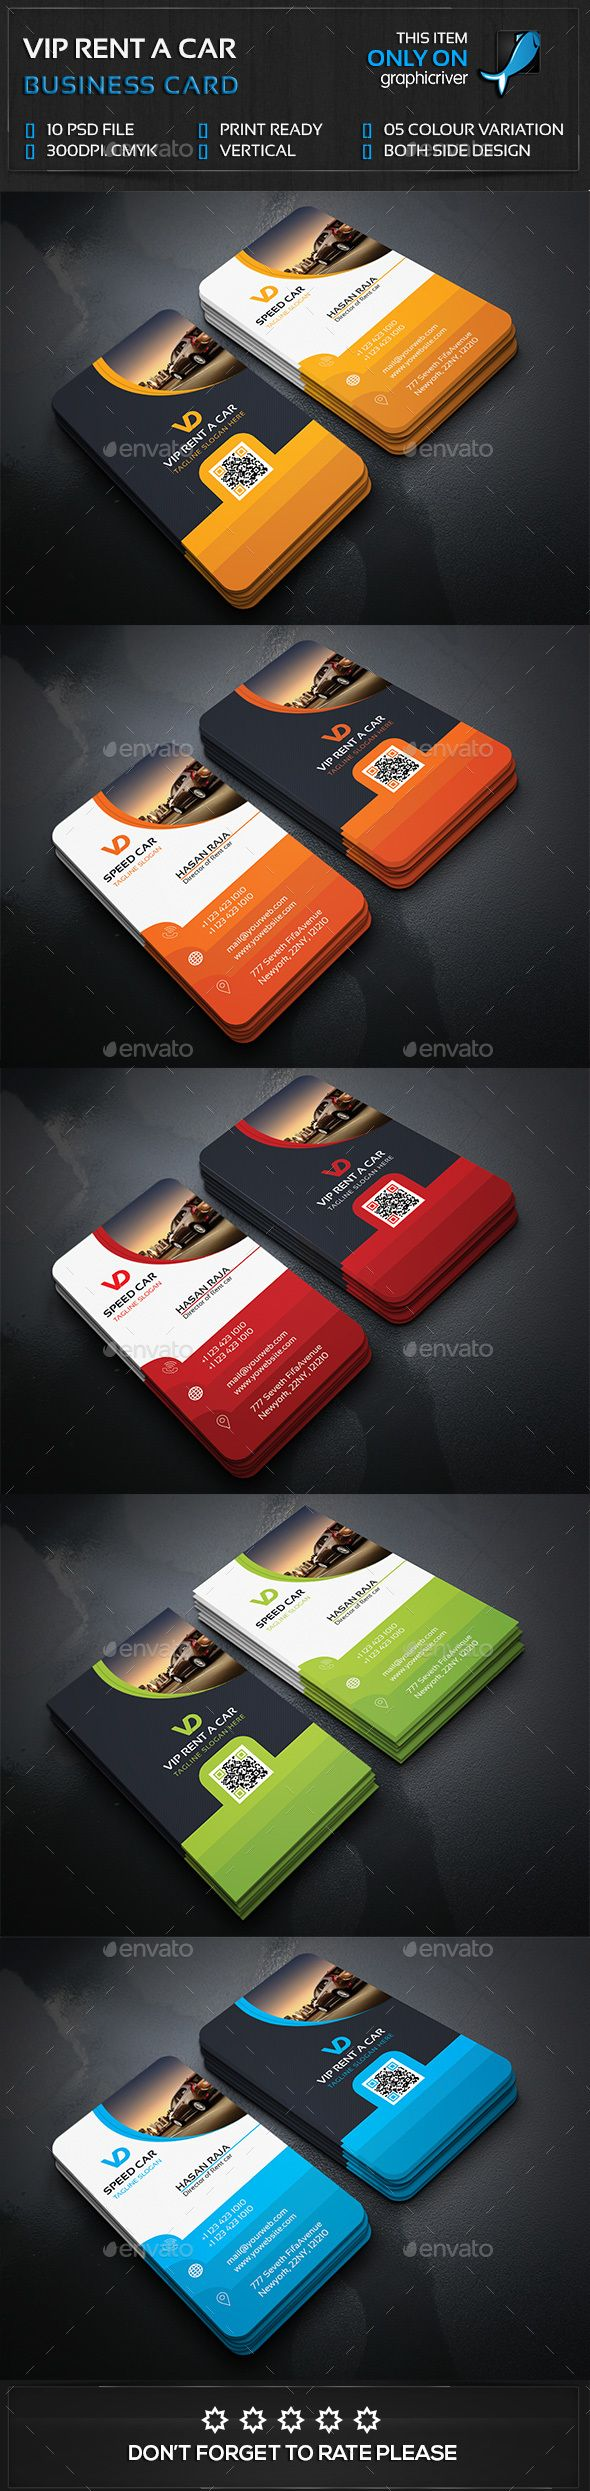 Rent a Car Business Card — Photoshop PSD #taxi #automobile • Available here → https://graphicriver.net/item/rent-a-car-business-card/14853445?ref=pxcr